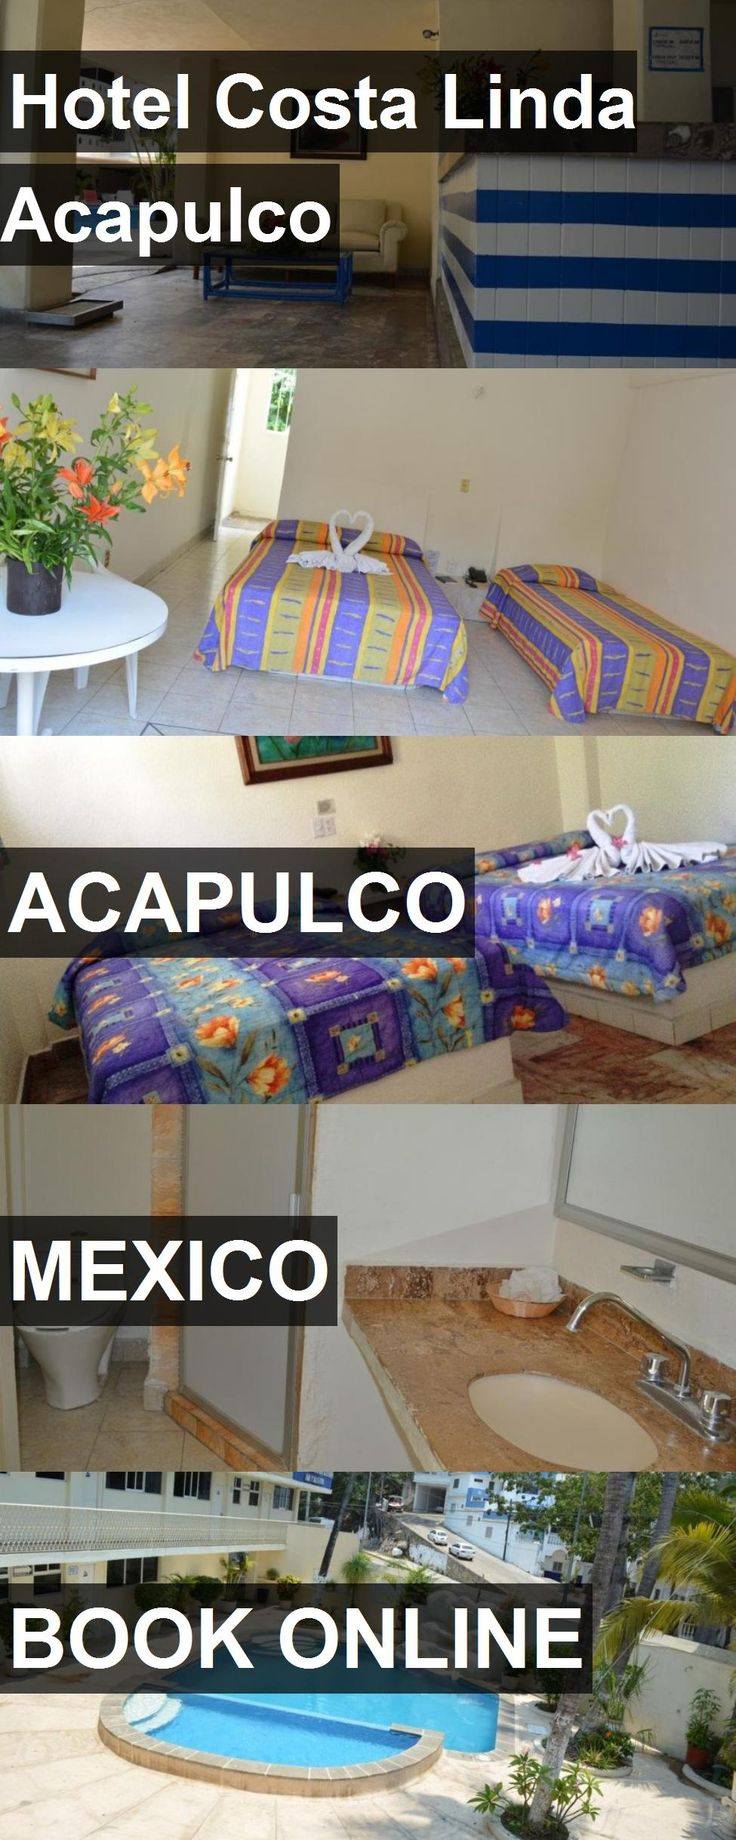 Hotel Costa Linda Acapulco in Acapulco, Mexico. For more information, photos, reviews and best prices please follow the link. #Mexico #Acapulco #travel #vacation #hotel